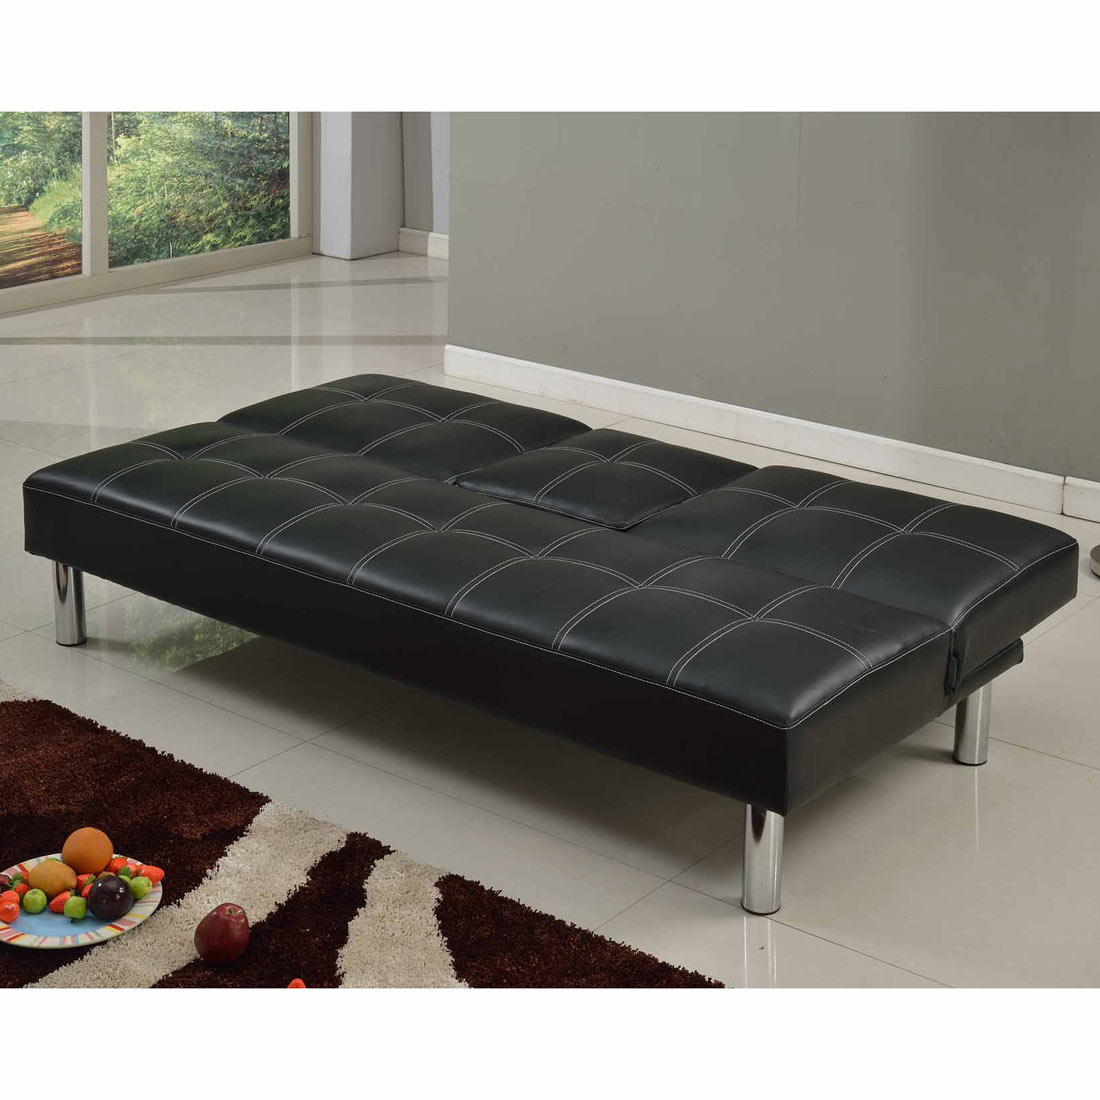 CINEMO 3 SEATER BLACK SOFA BED FAUX LEATHER w FOLD DOWN  : SBD CINEMO BLACK PIC3 from ebay.co.uk size 1100 x 1100 jpeg 125kB